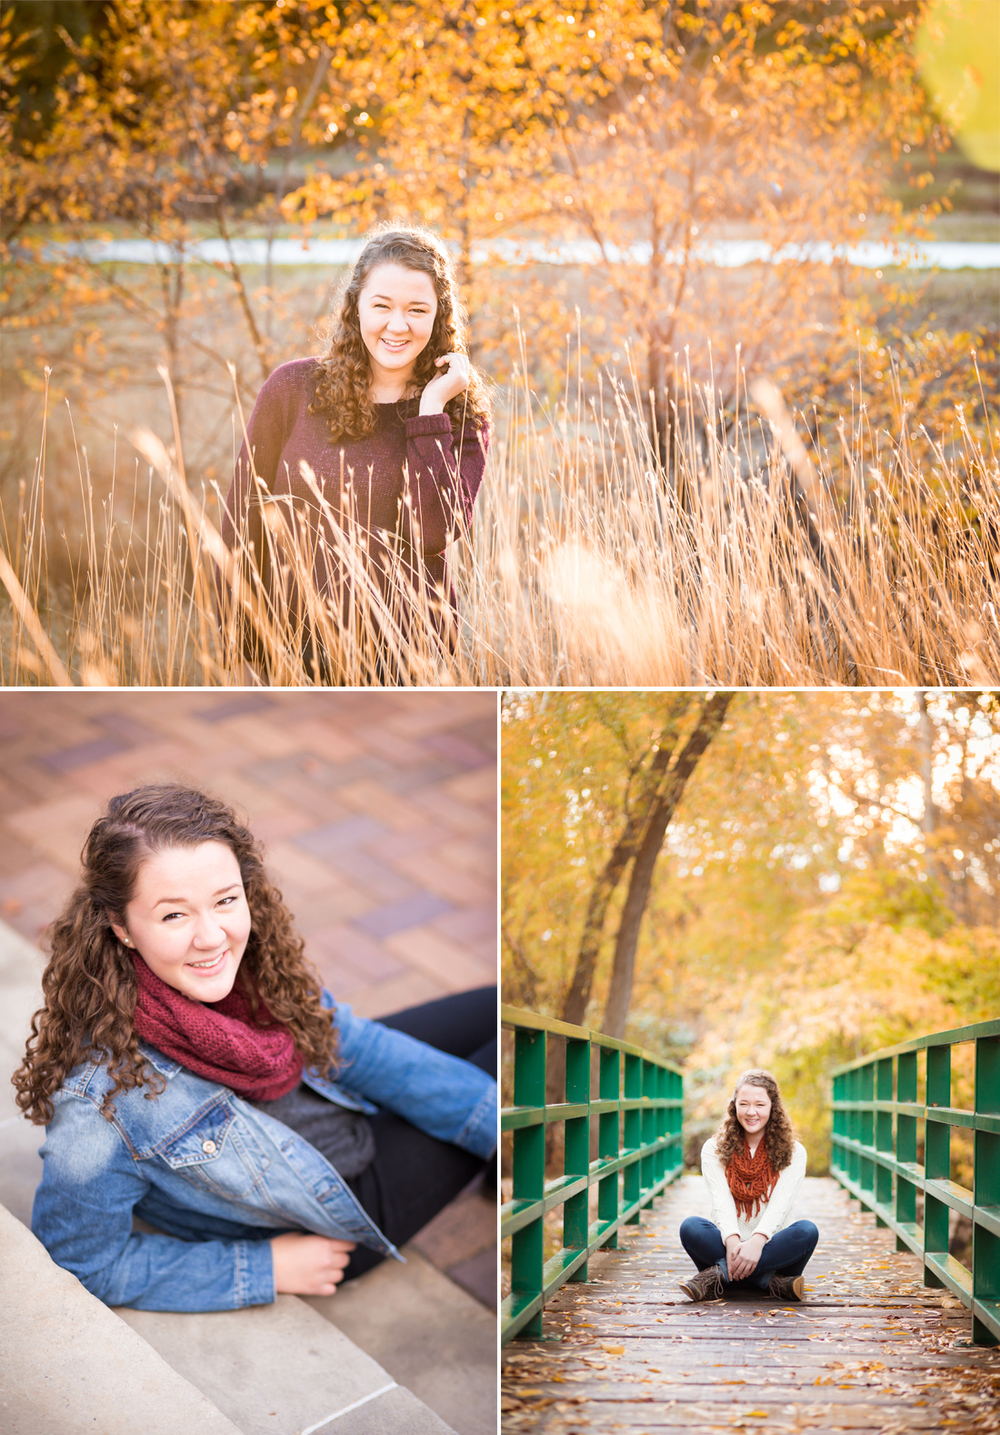 Boise_Photographer_Urban_Autumn_Senior_Session